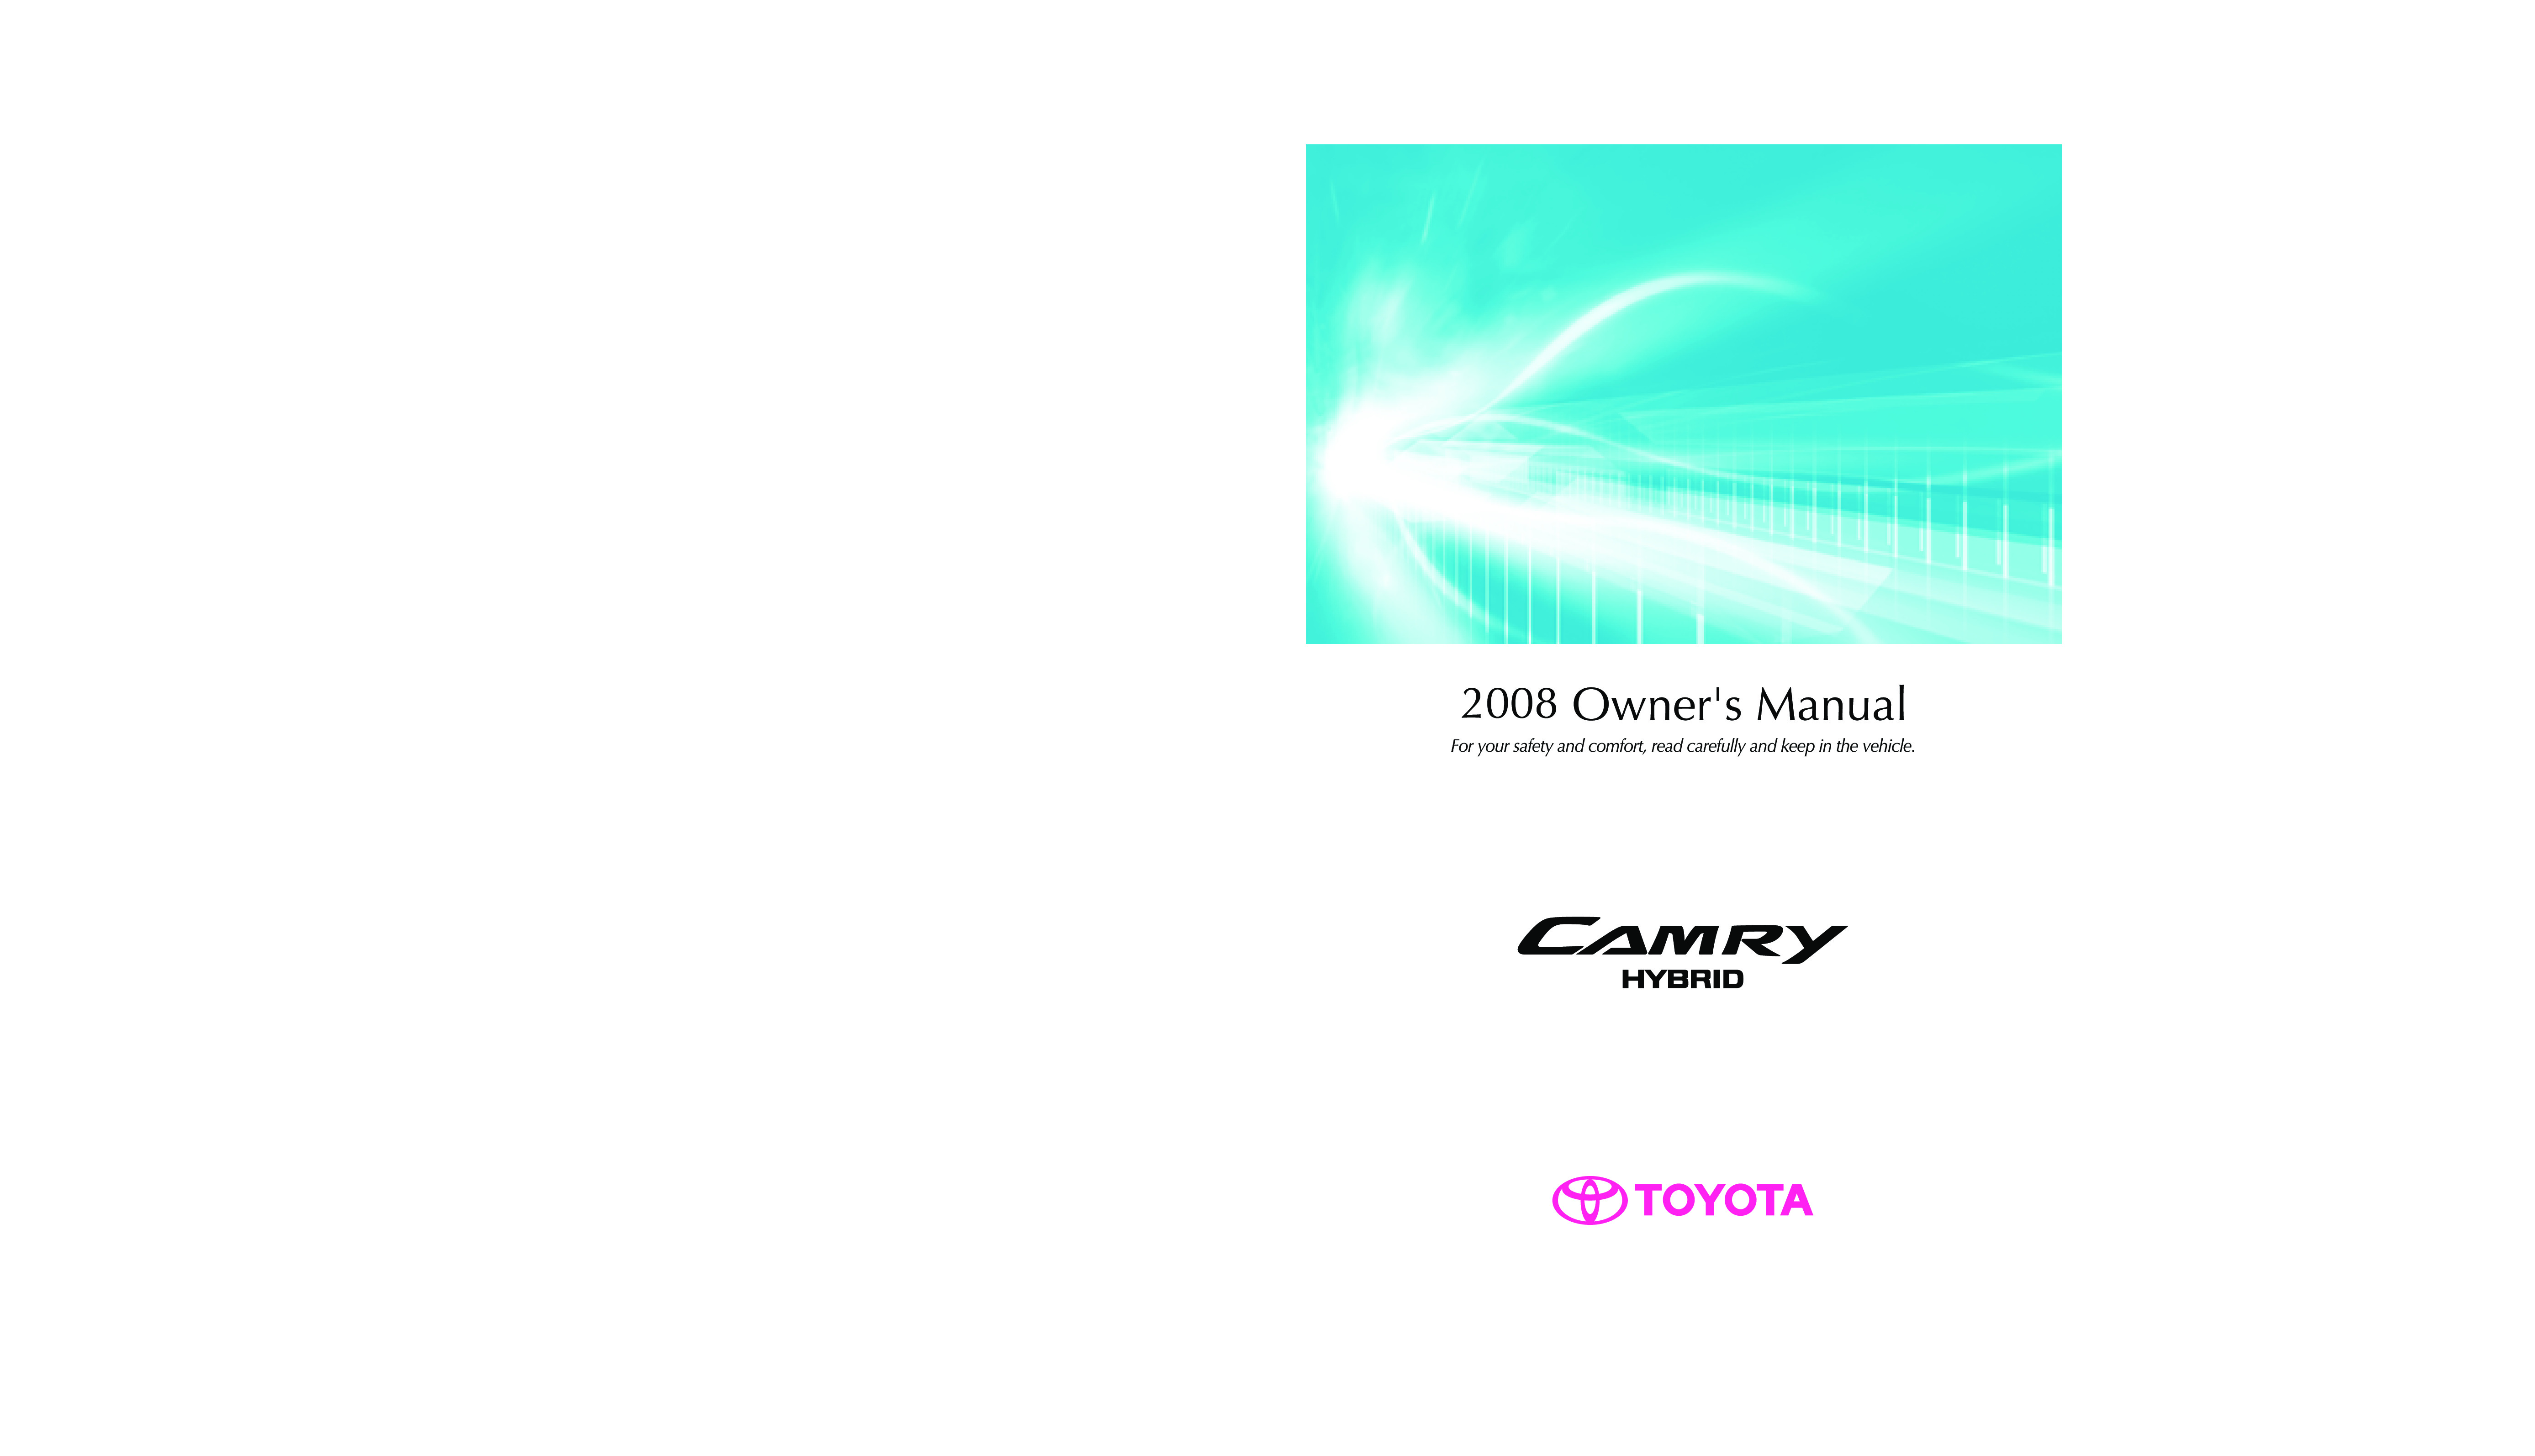 2008 Toyota Camry Hybrid owners manual